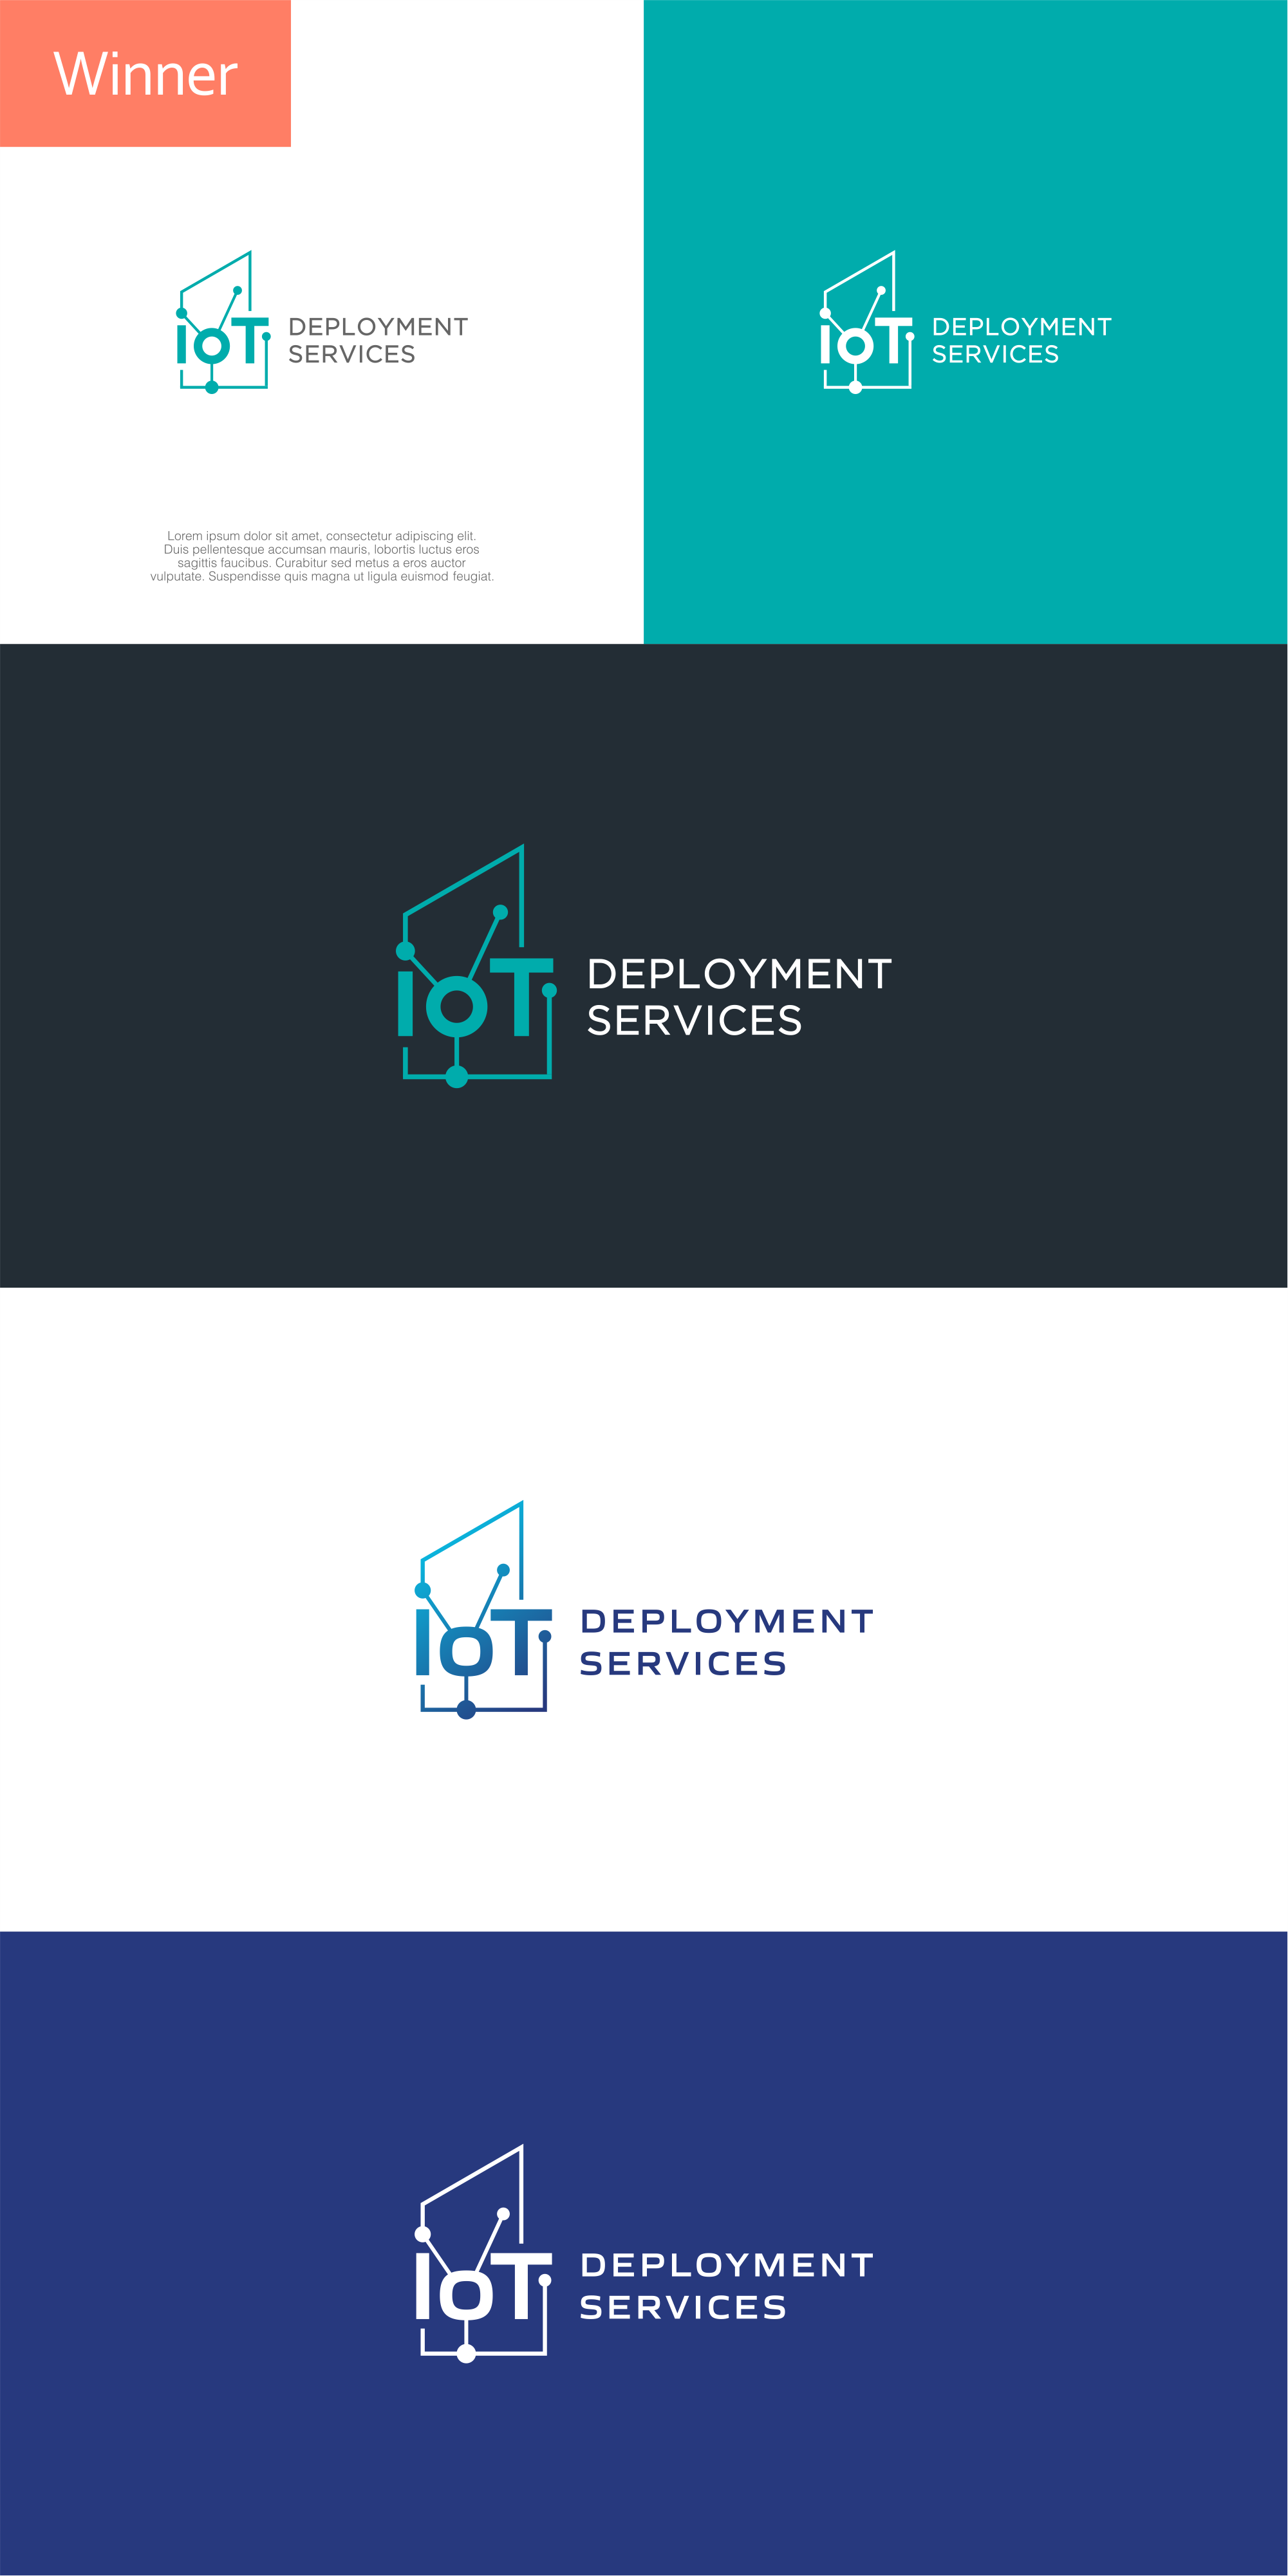 Design a logo for IoT Deployment Services company!